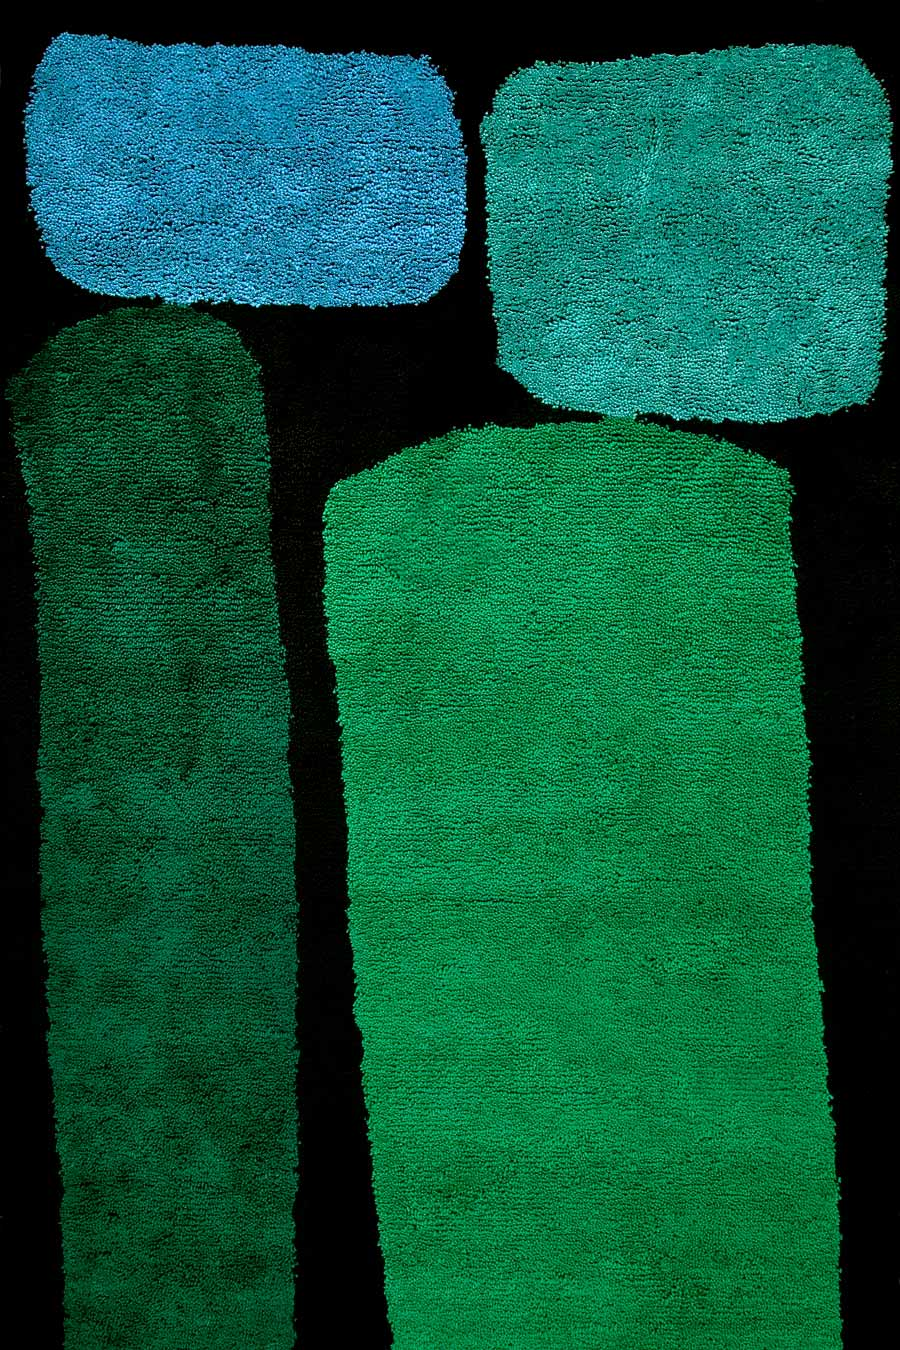 overhead of jewel rug by dinosaur designs green and blue large shapes on black background